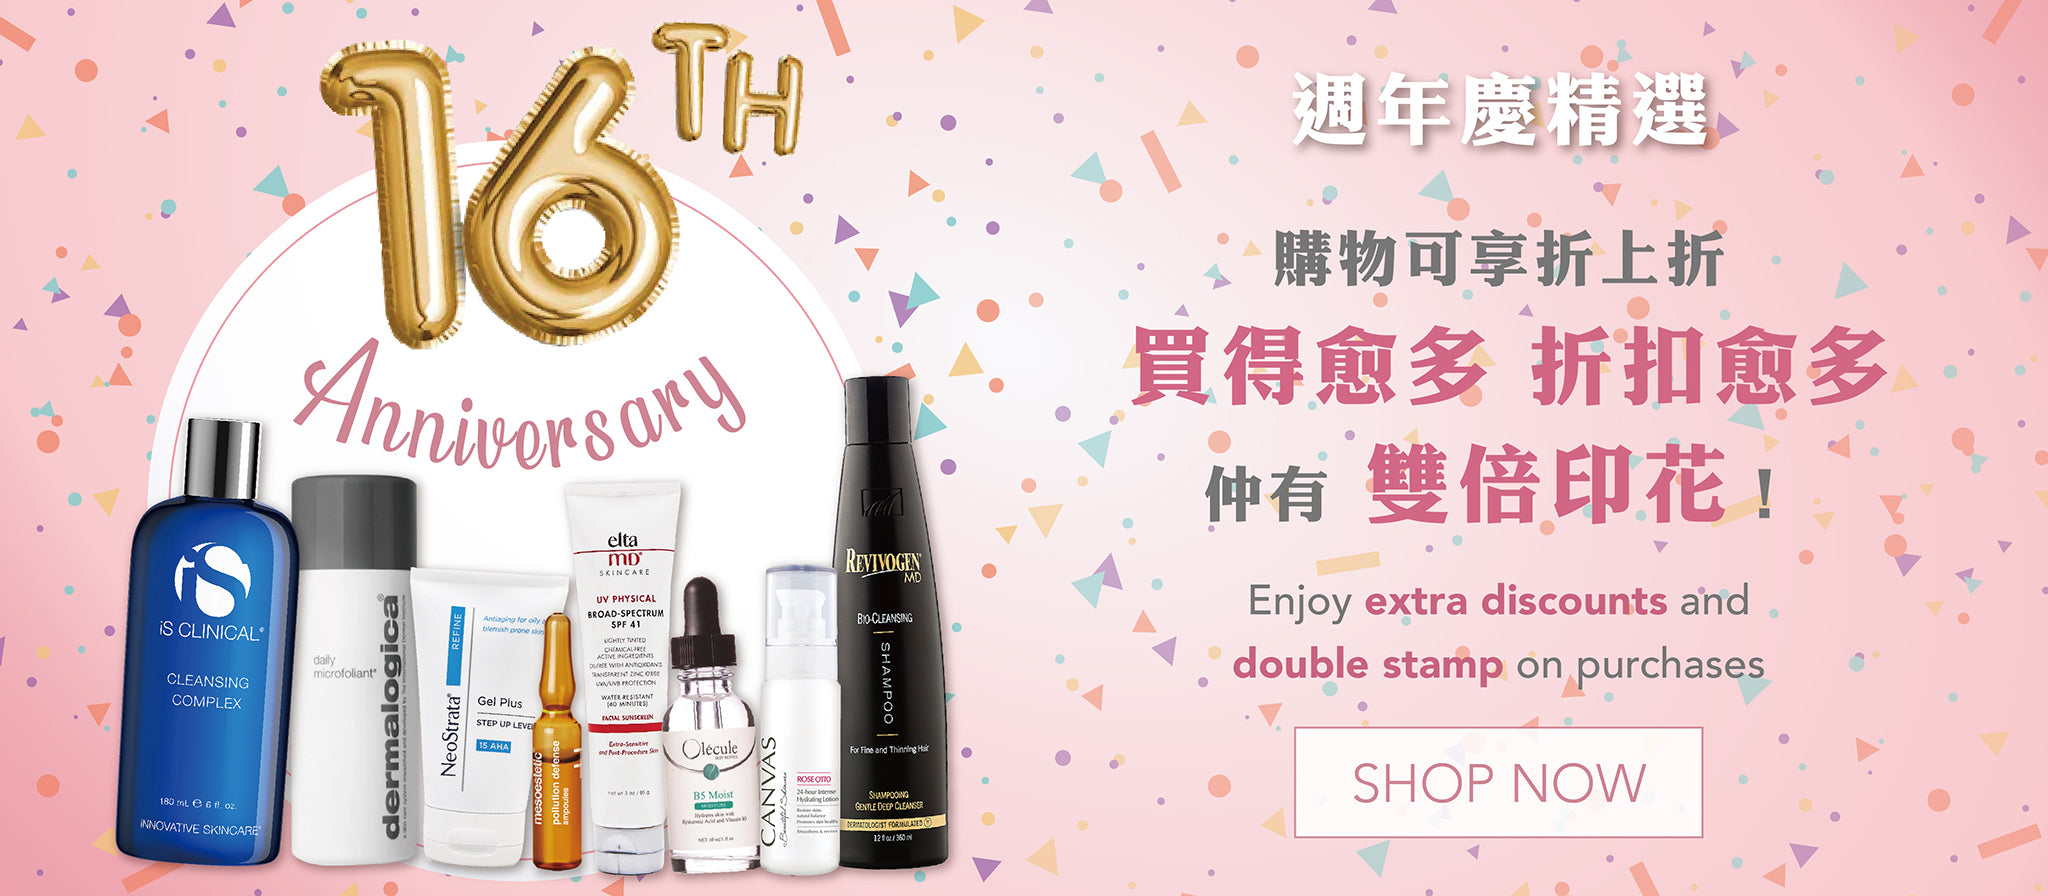 Elegant Beauty 16th Anniversary Promotion